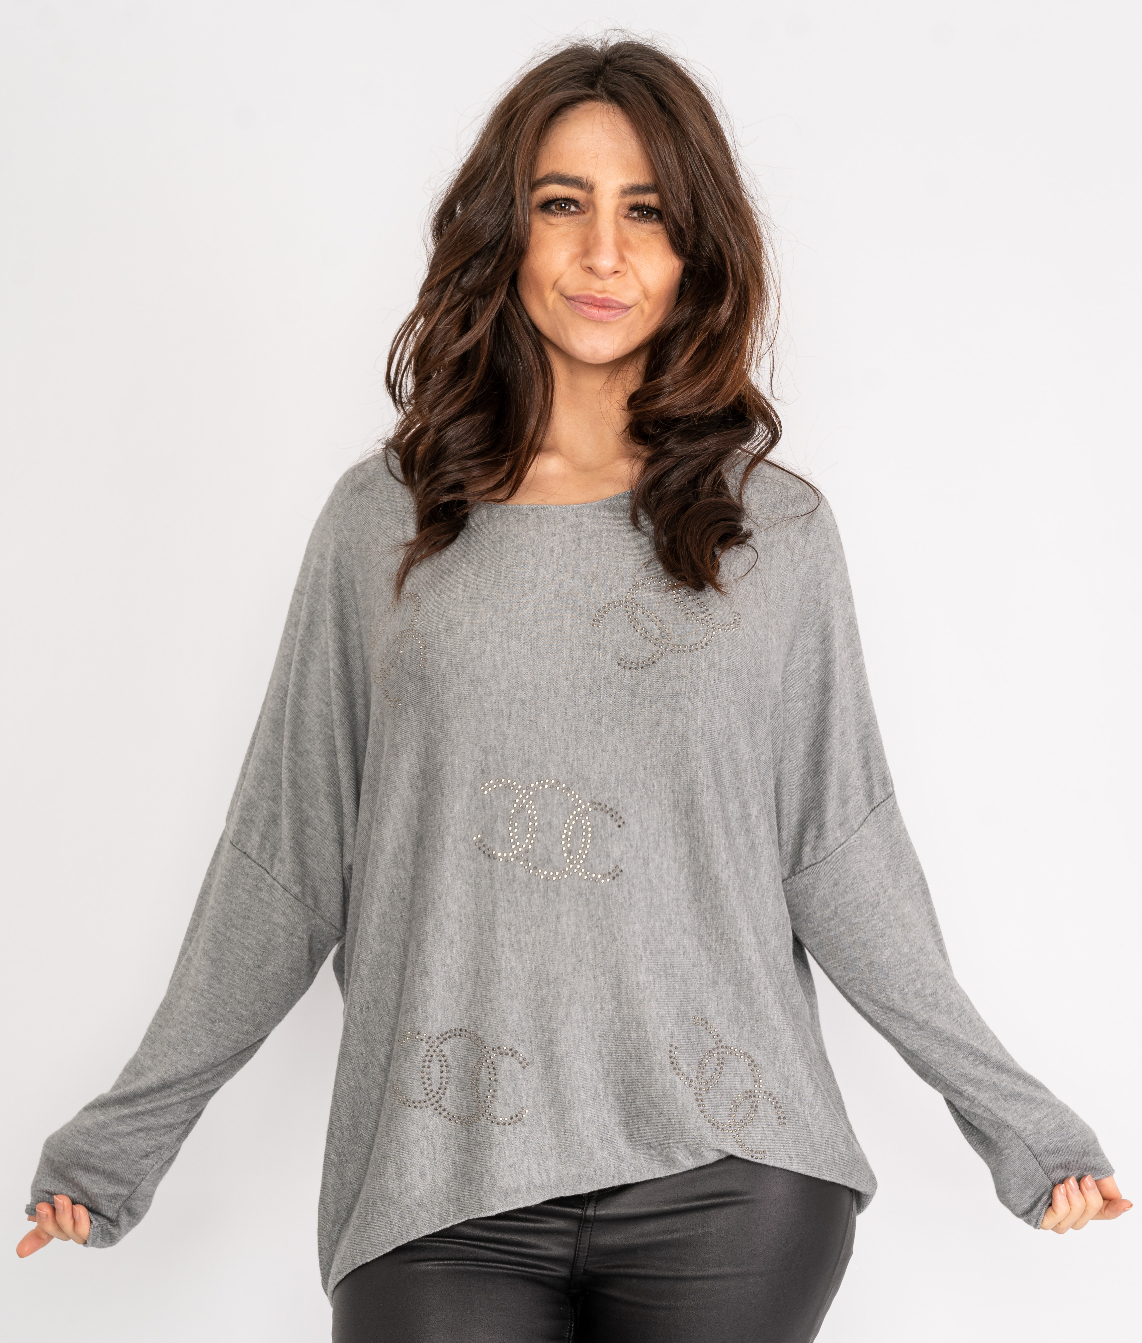 Long sleeve sparkle top Lucy Sparks